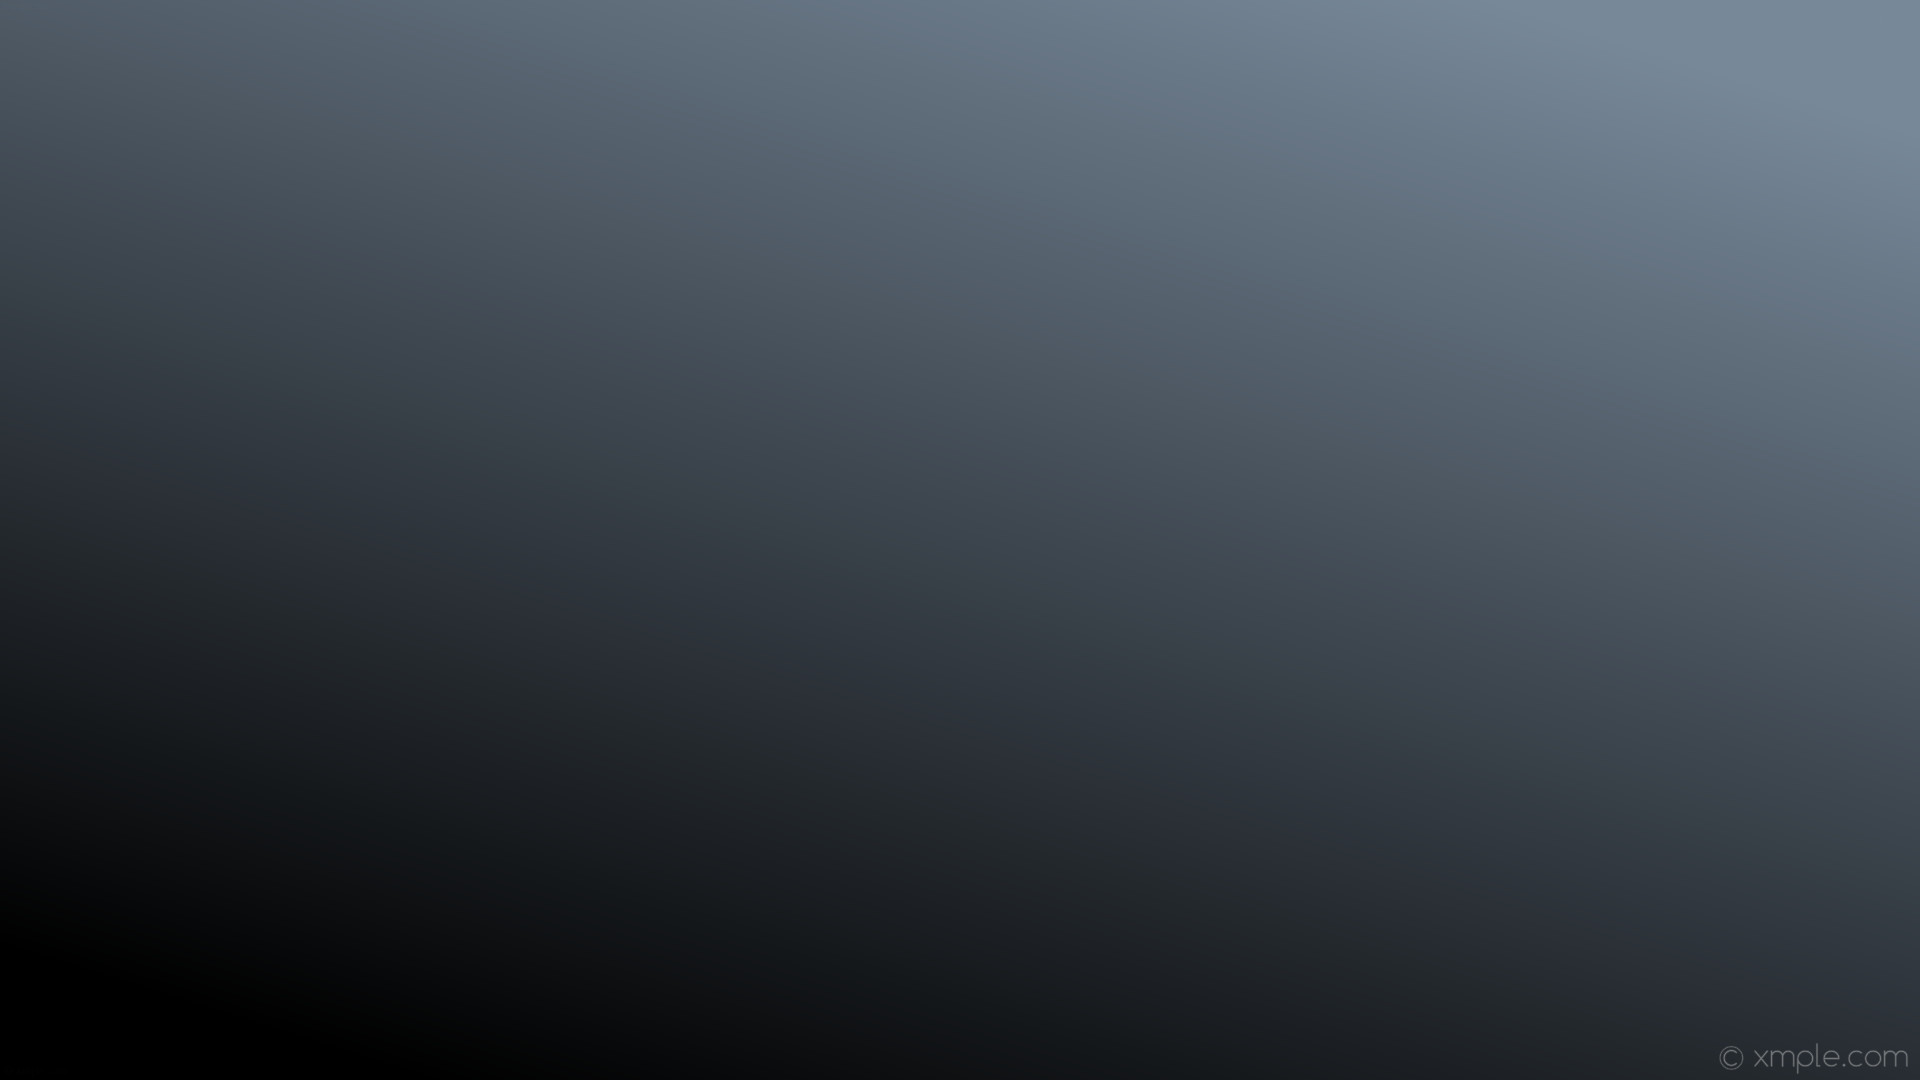 wallpaper gradient linear black grey light slate gray #778899 #000000 45°